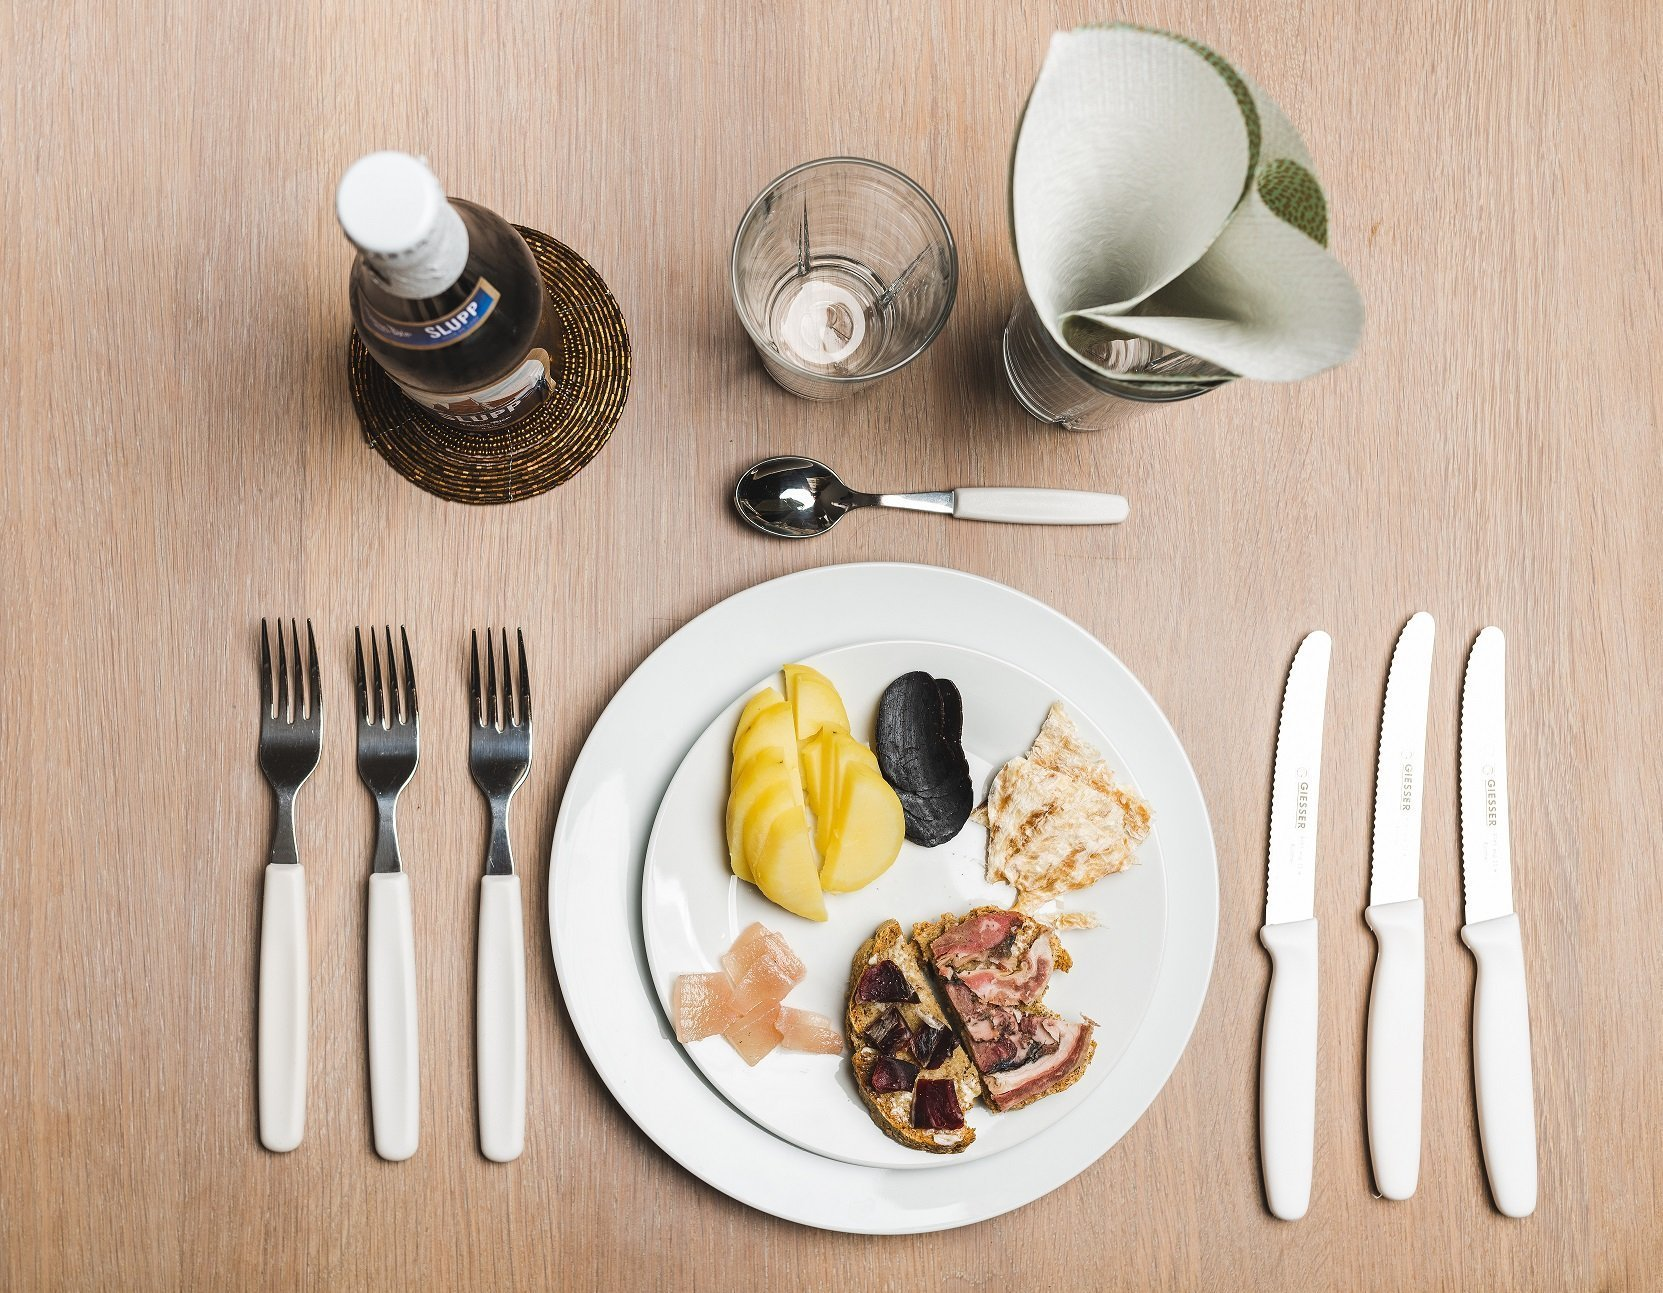 Faroese Home Dining on 1 March 2019